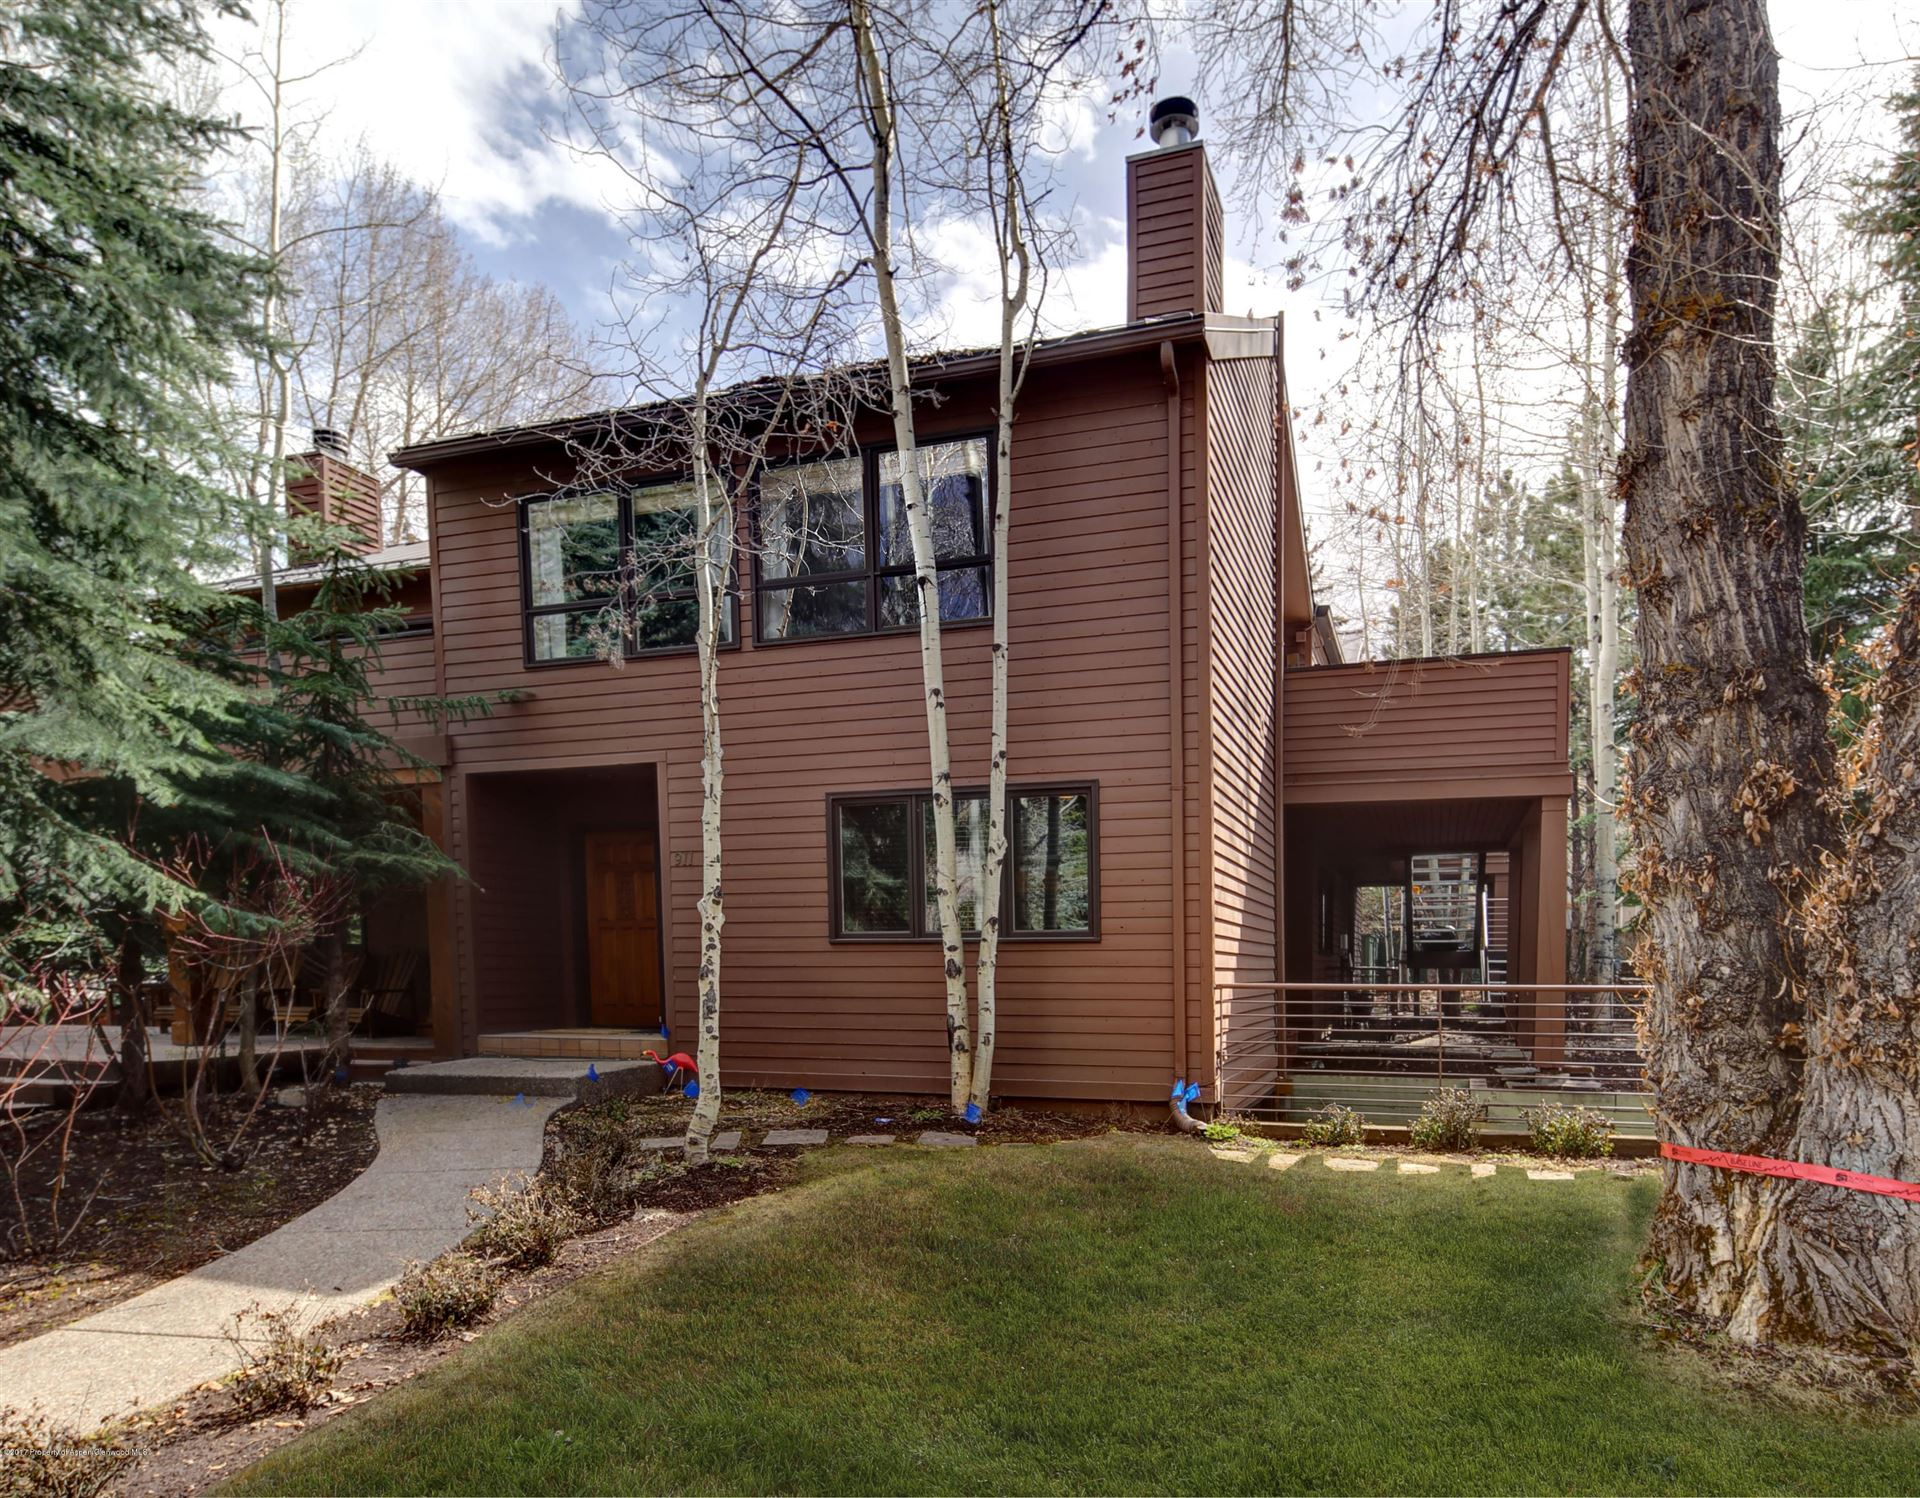 911 W Francis Street, Aspen, CO 81611 - MLS#: 165718